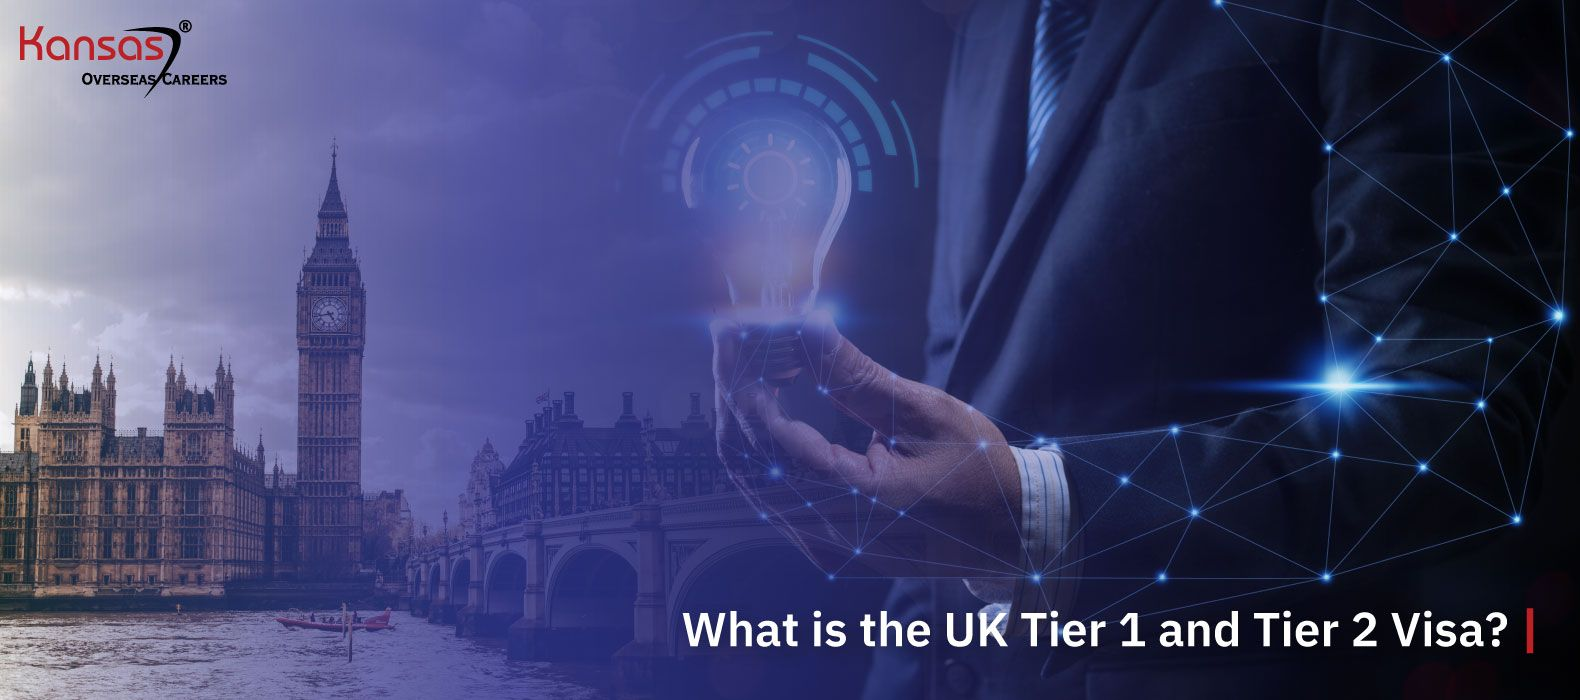 UK-Tier-1-vs-Tier-2-Visa (1)